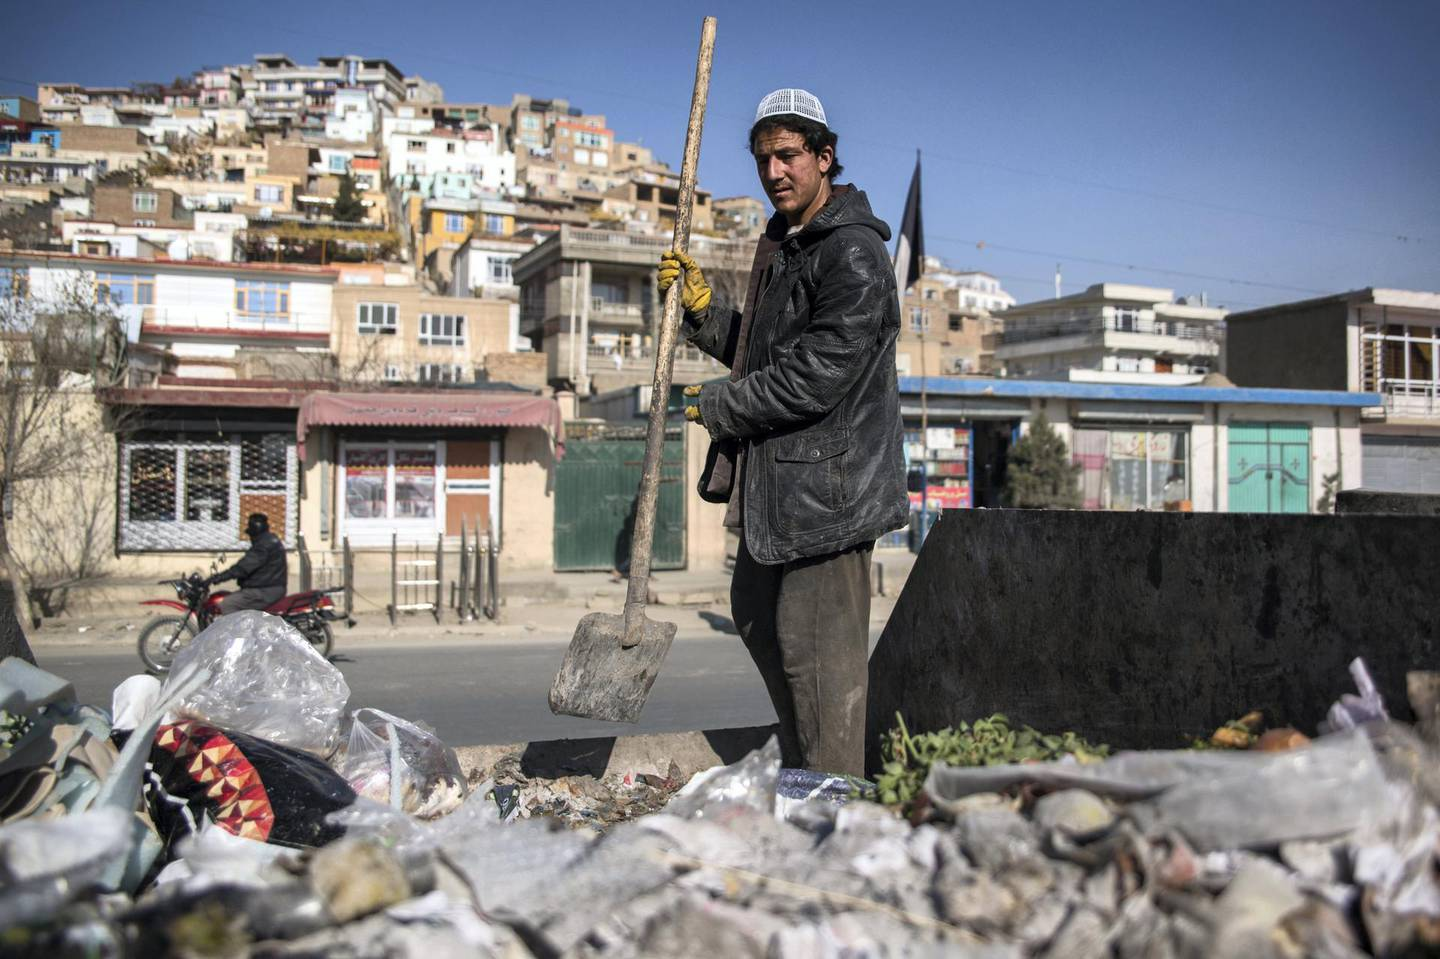 Trash is a serious problem in Kabul, with the city's municipality saying that between 2,500-2,800 metric tonnes of garbage are produced every day.